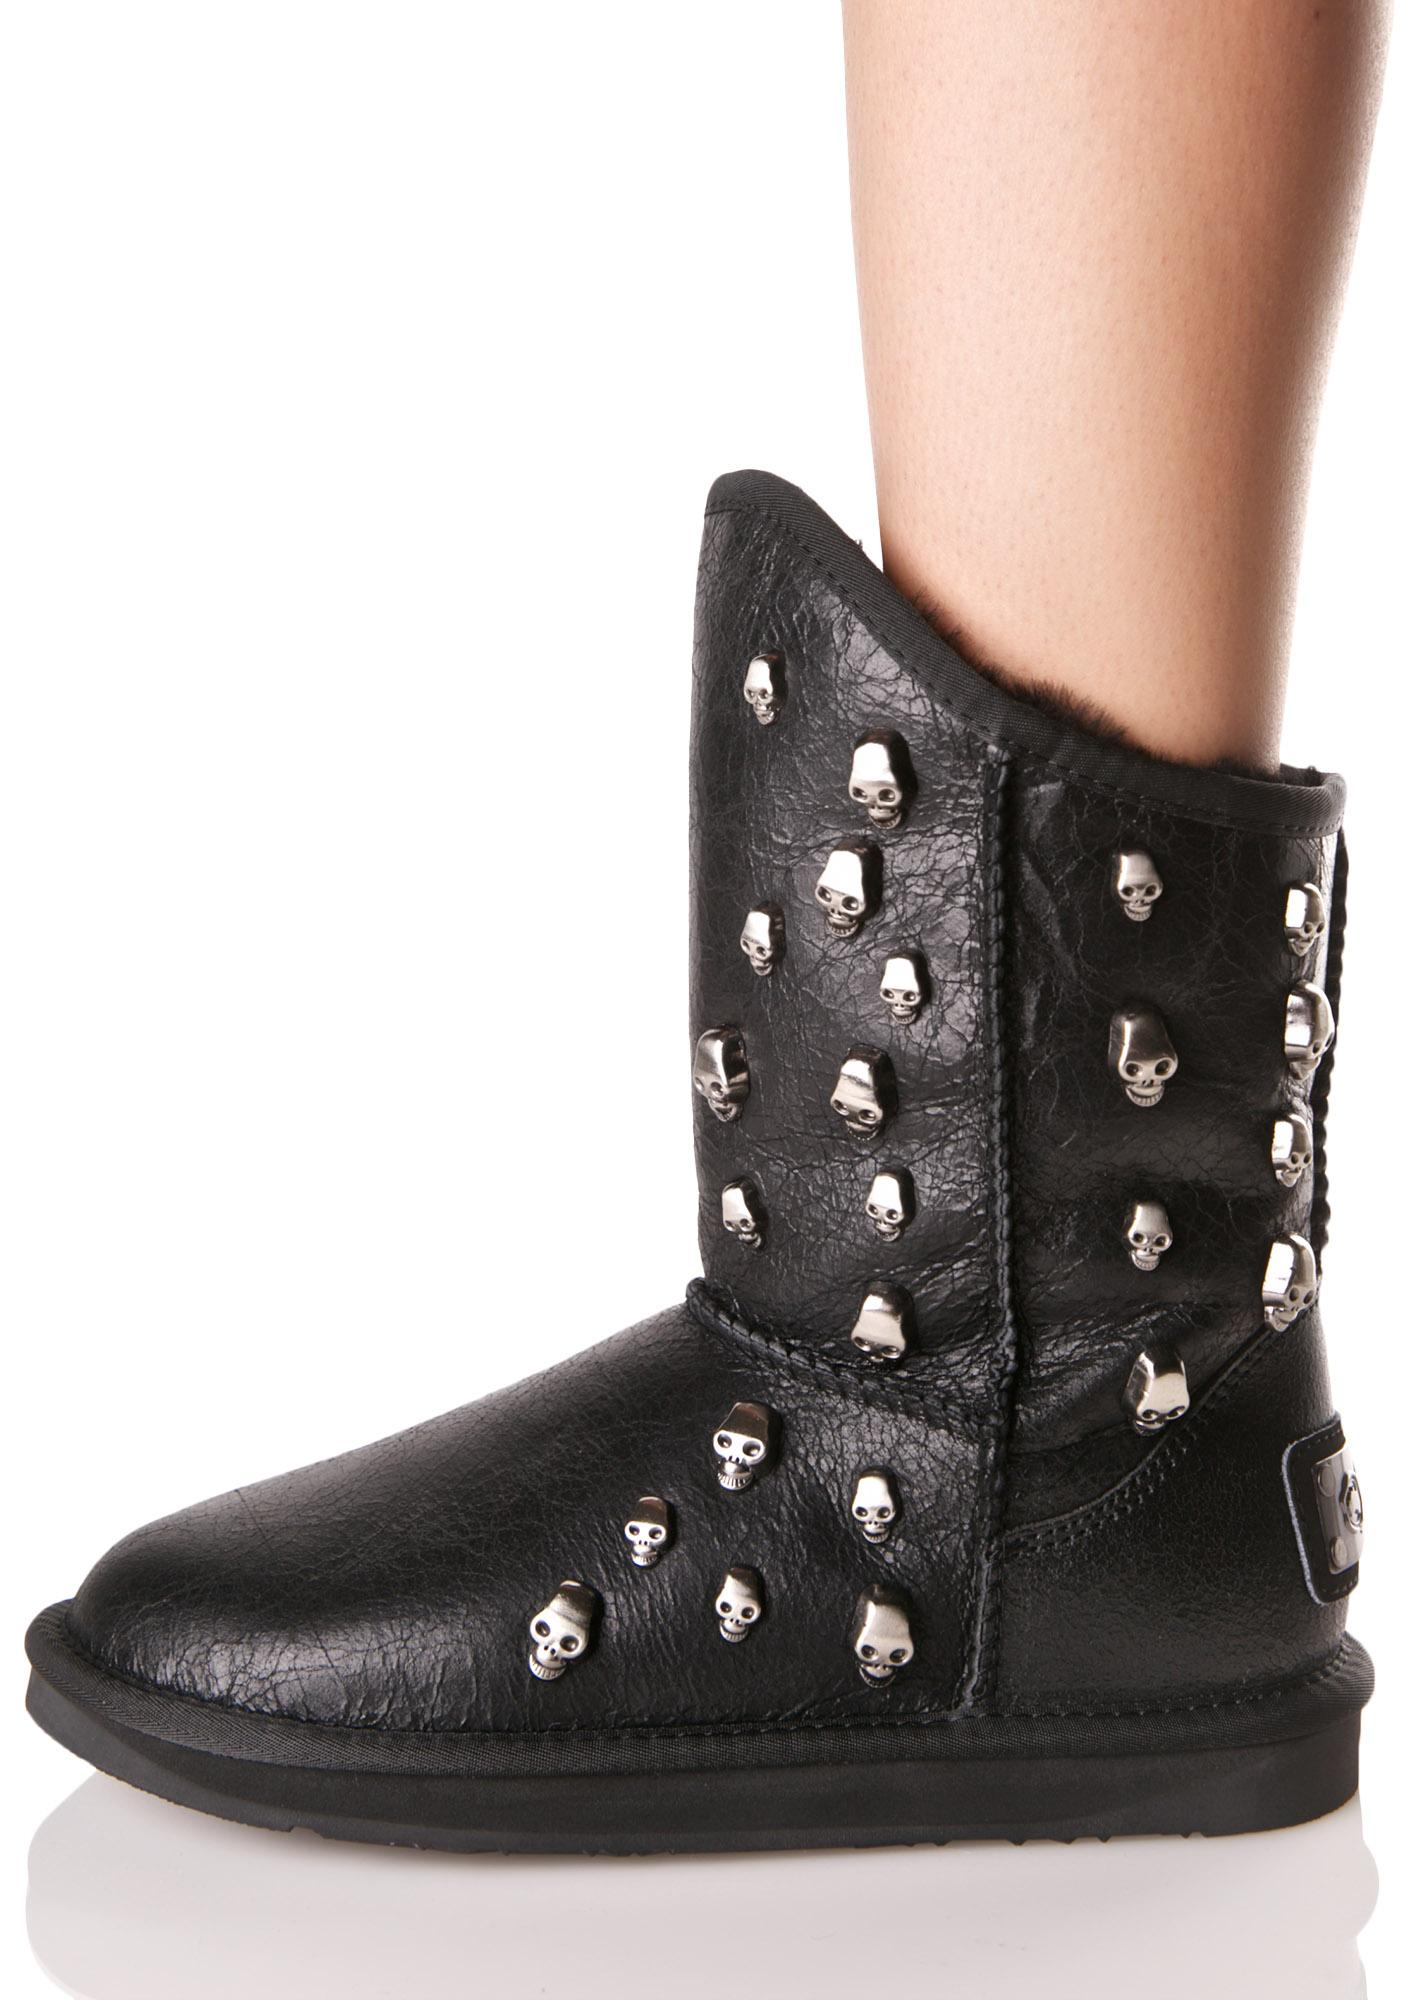 Australia Luxe Collective Fallen Angel Boots